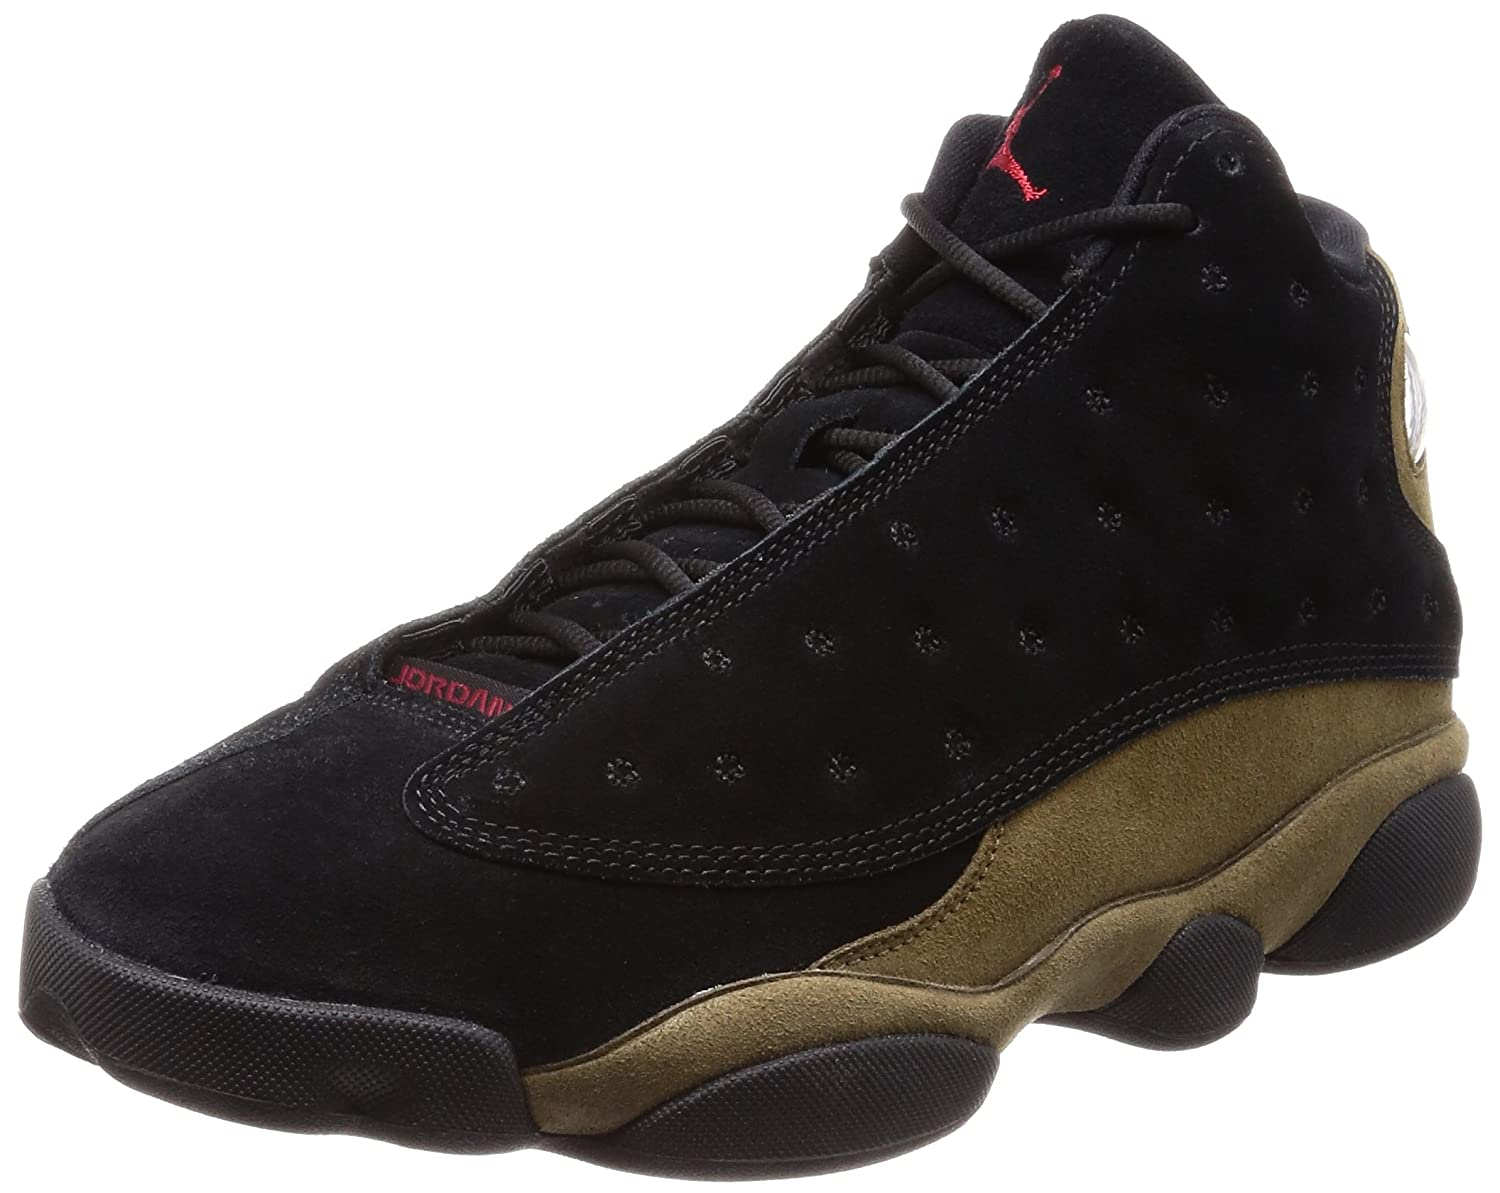 buy popular aa964 c2914 AIR Jordan 13 Retro 'Olive' - 414571-006